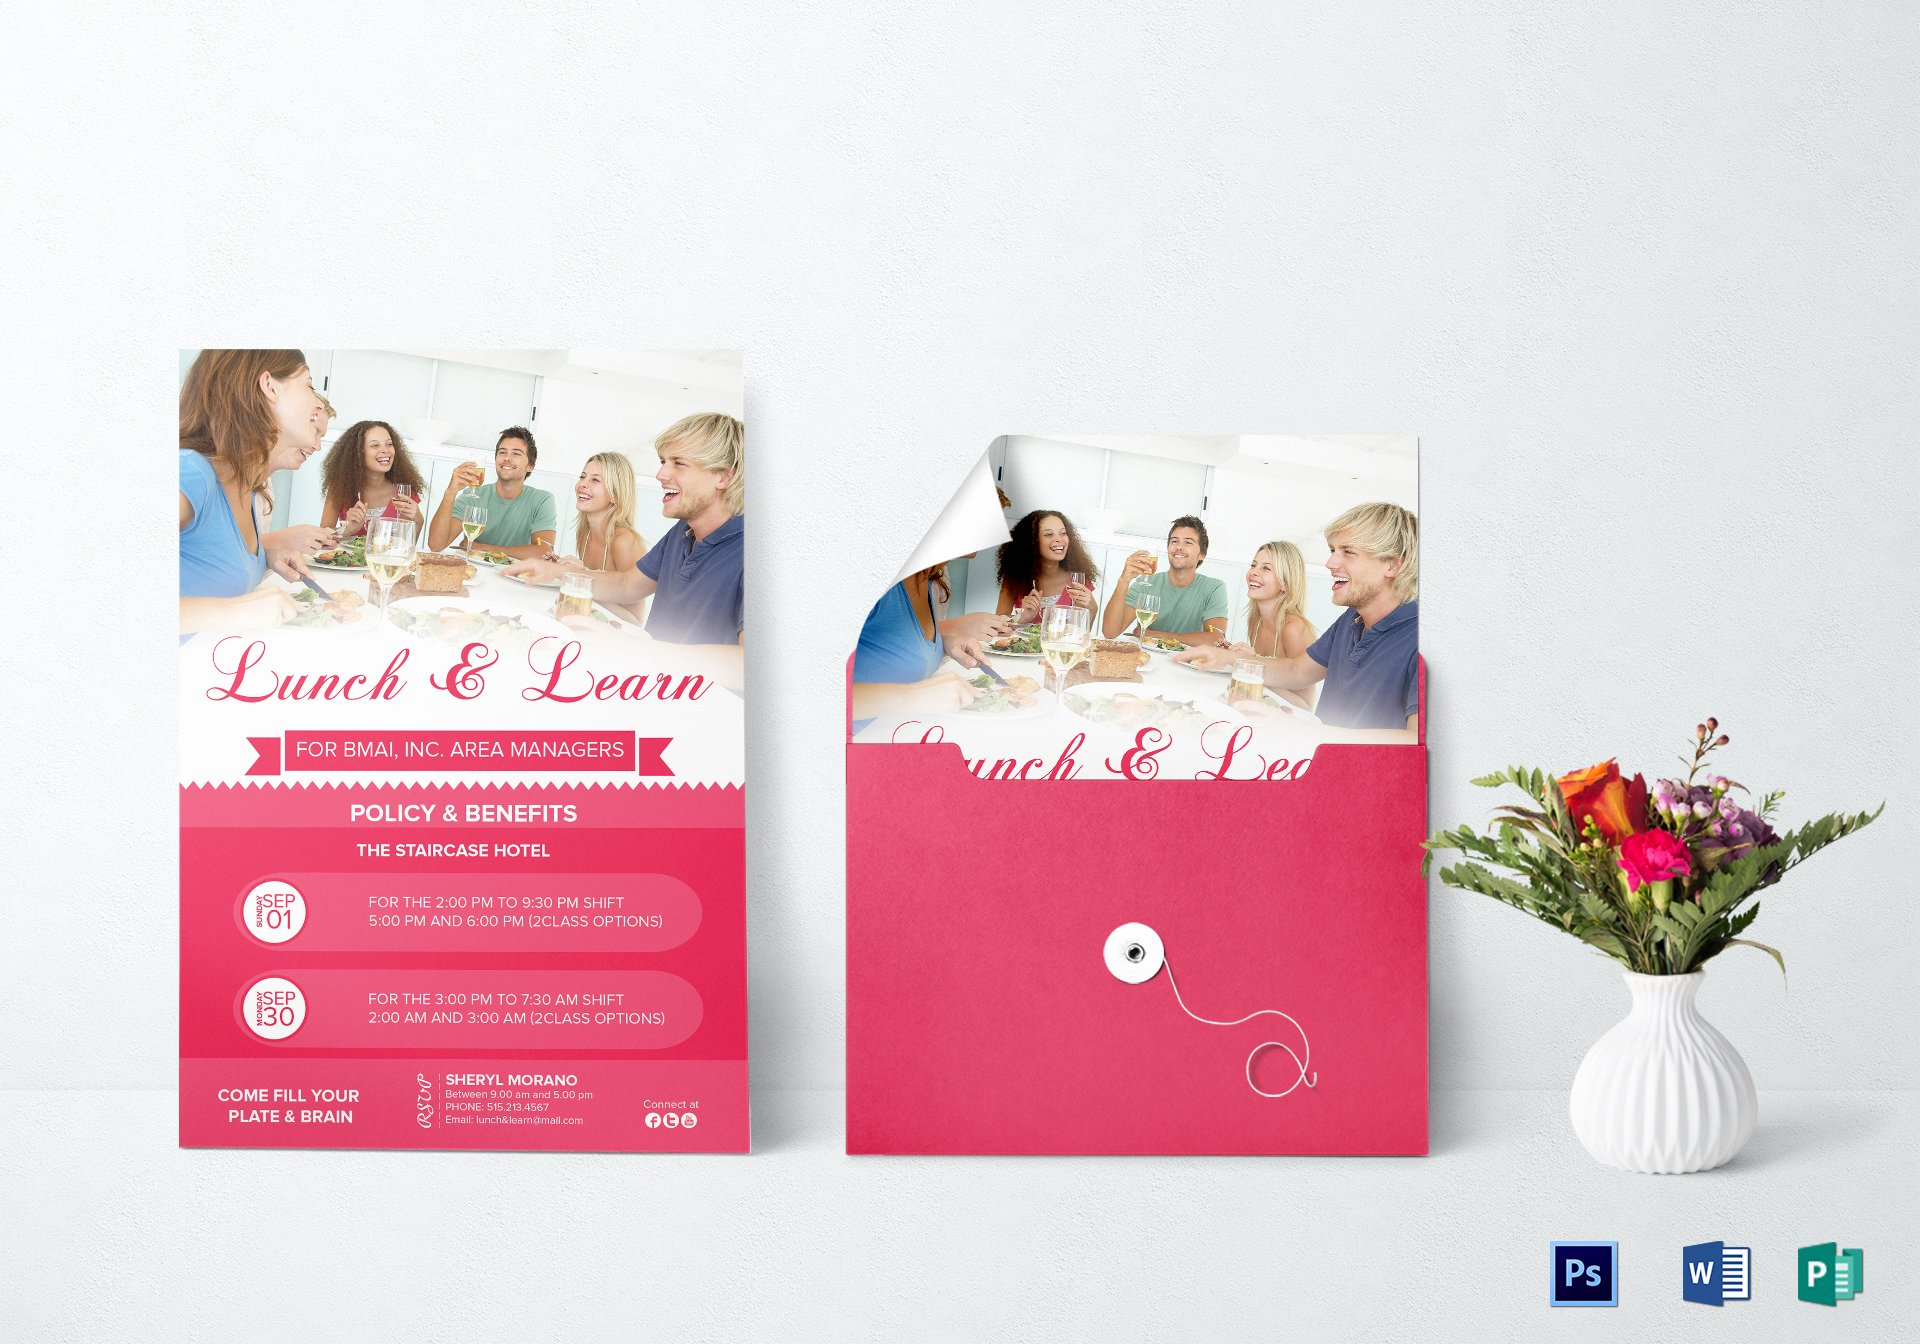 Lunch and Learn Invite Template Inspirational Lunch and Learn Invitation Design Template In Psd Word